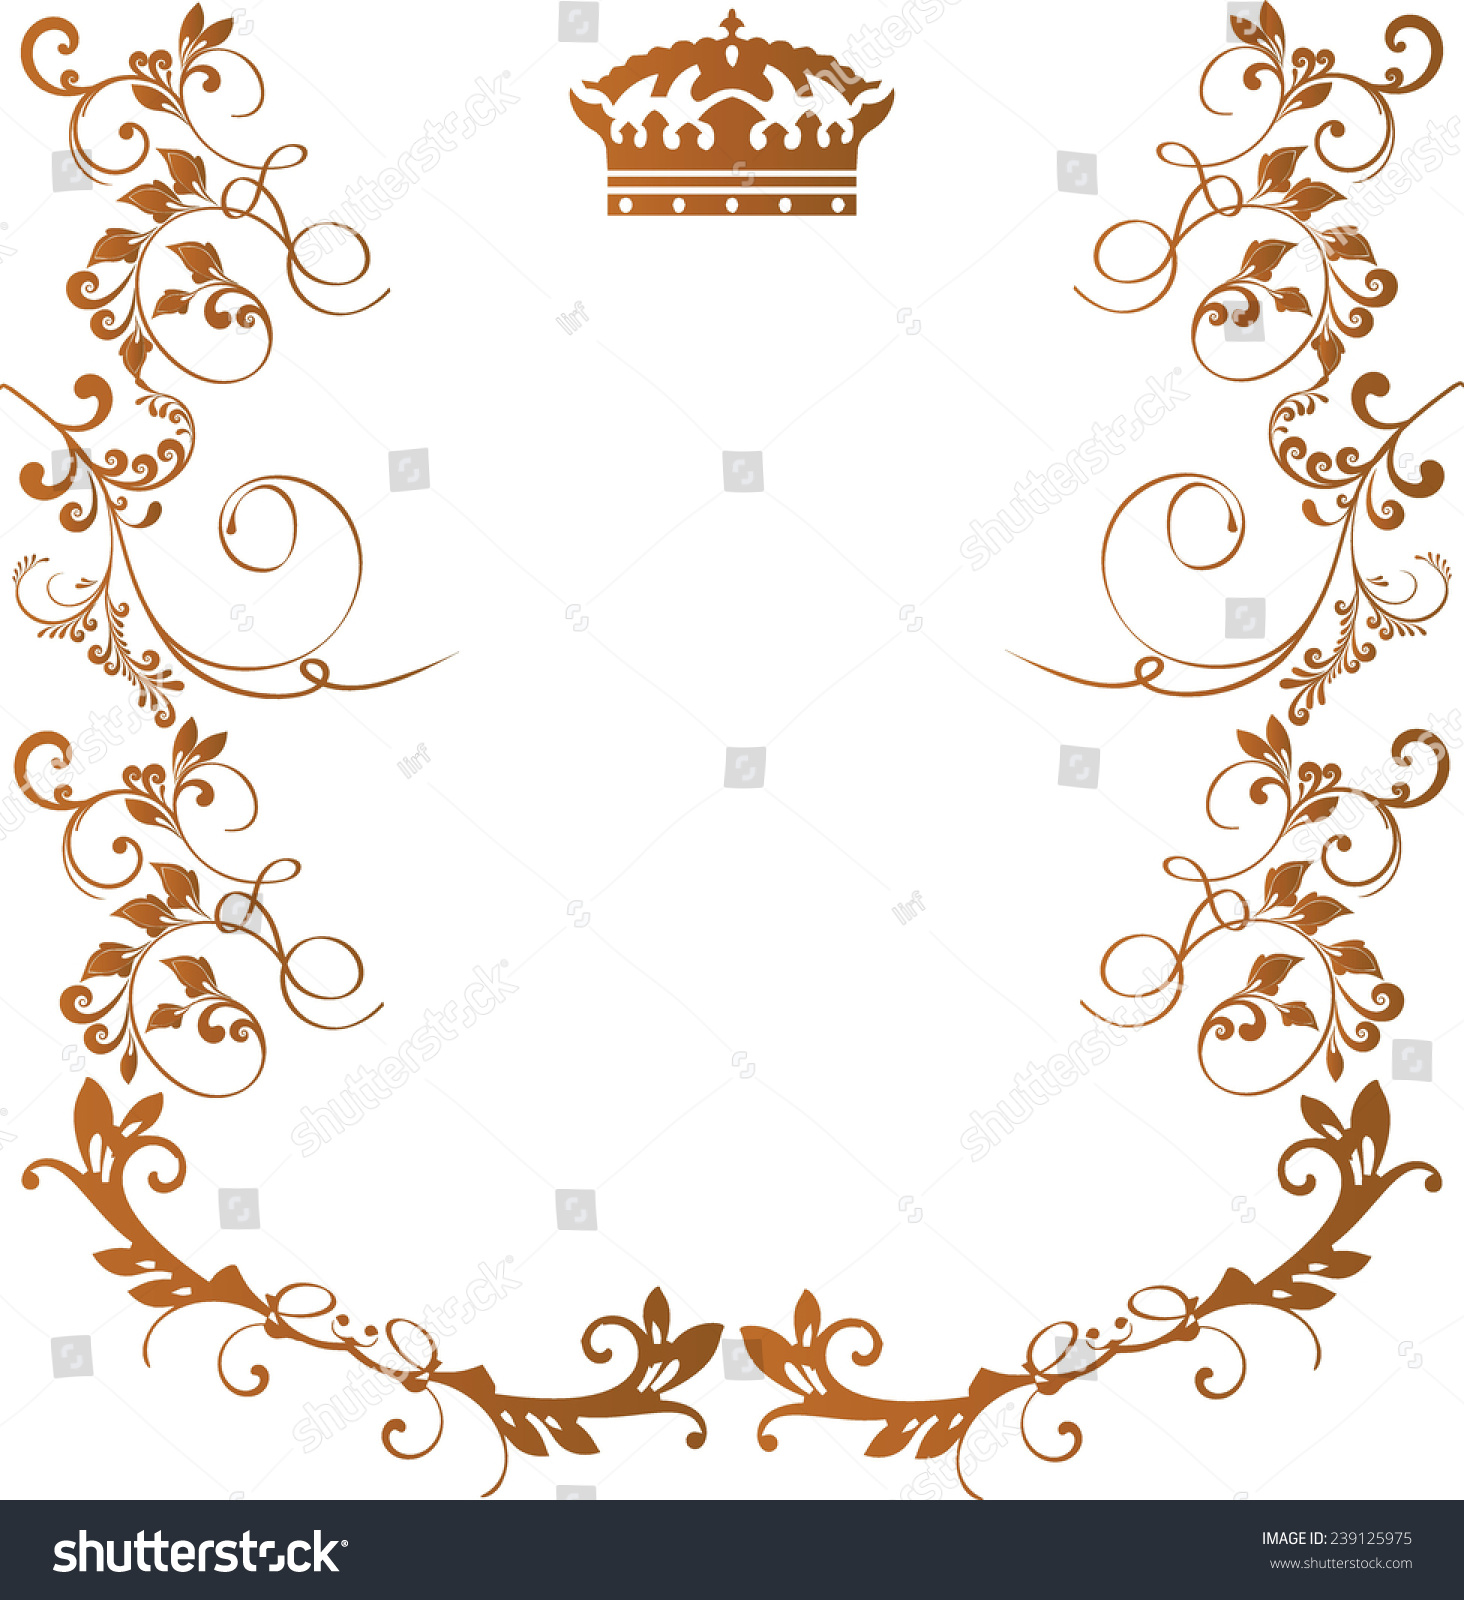 royal floral frame with crown isolated on white background gold color